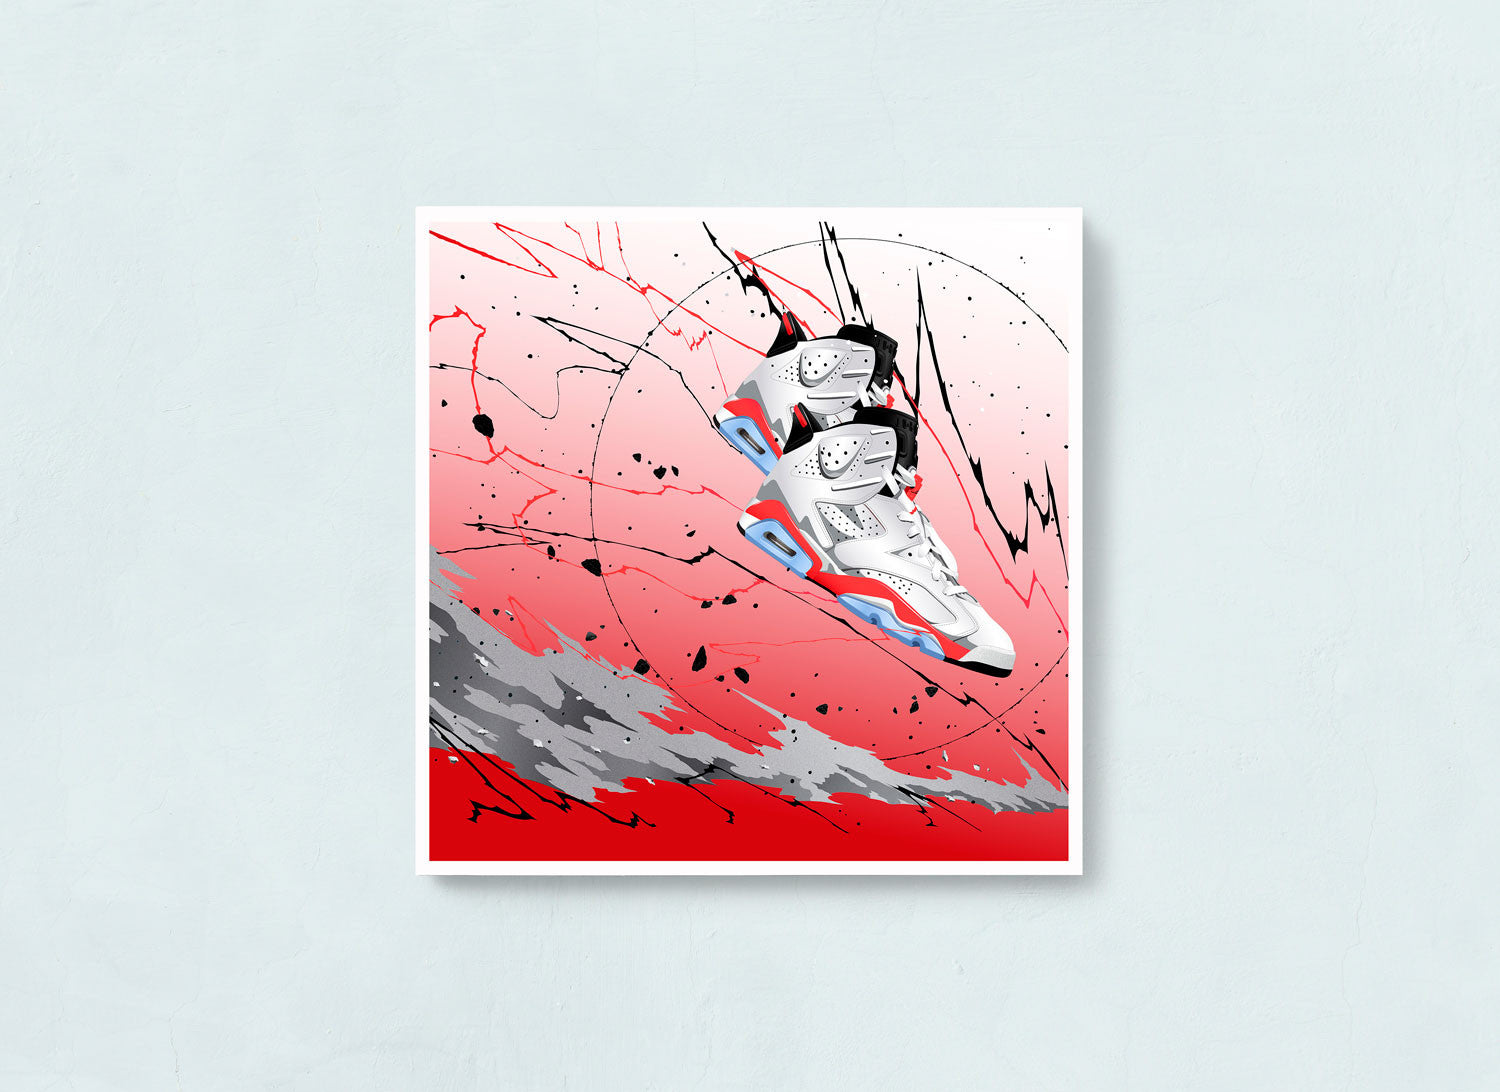 Fine Sneaker Art Print of the Air Jordan 6 White Infrared